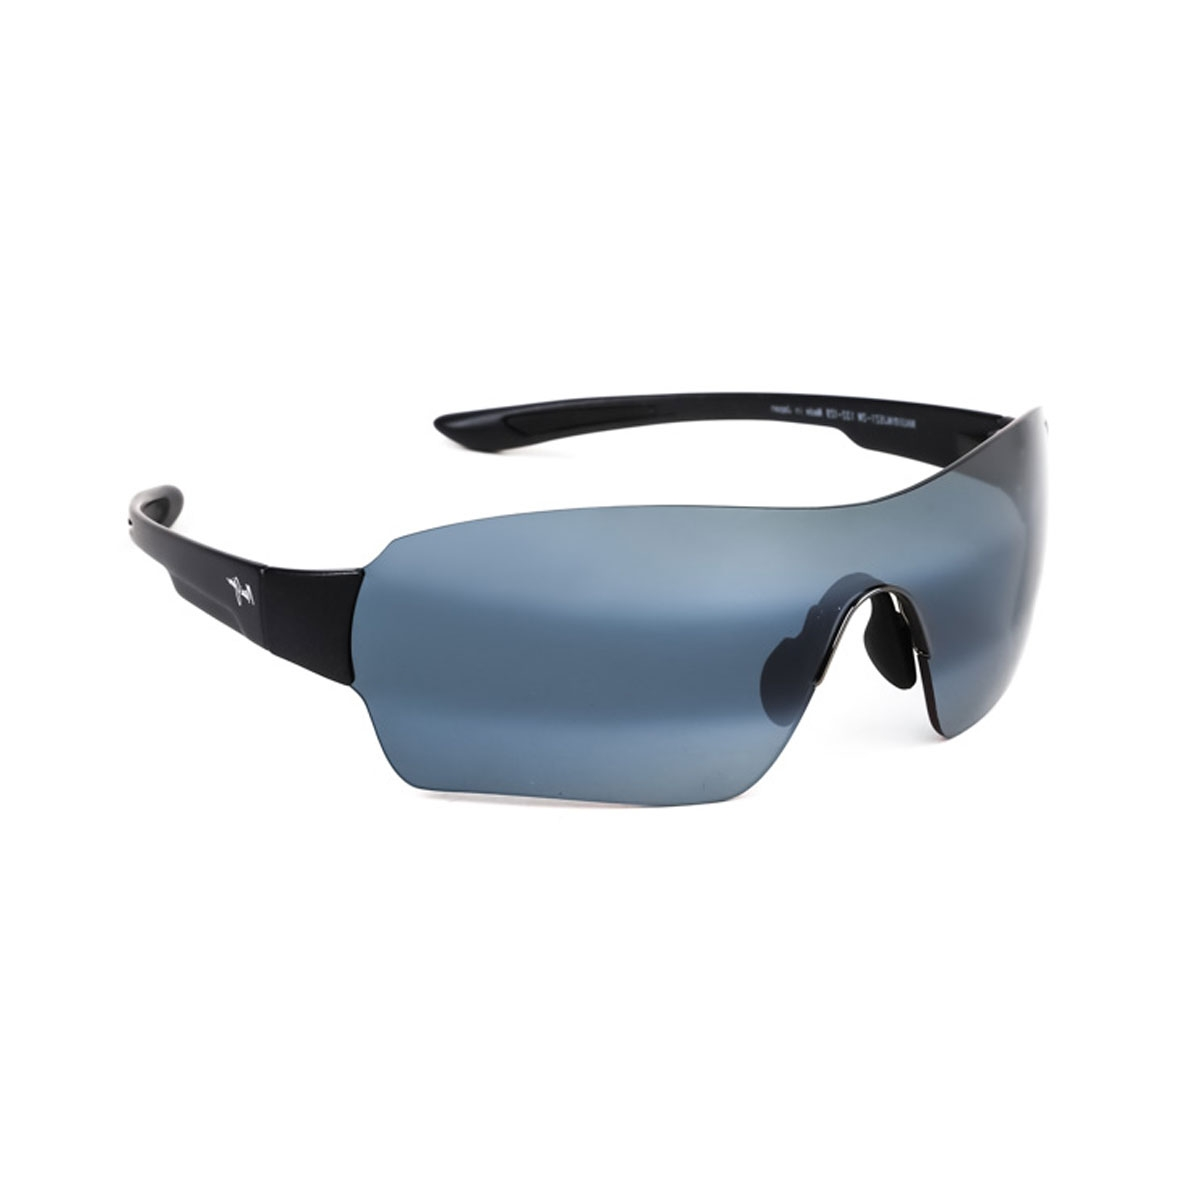 91acba7cc50 Image of Maui Jim Night Dive Sunglasses - Natural Grey Lens